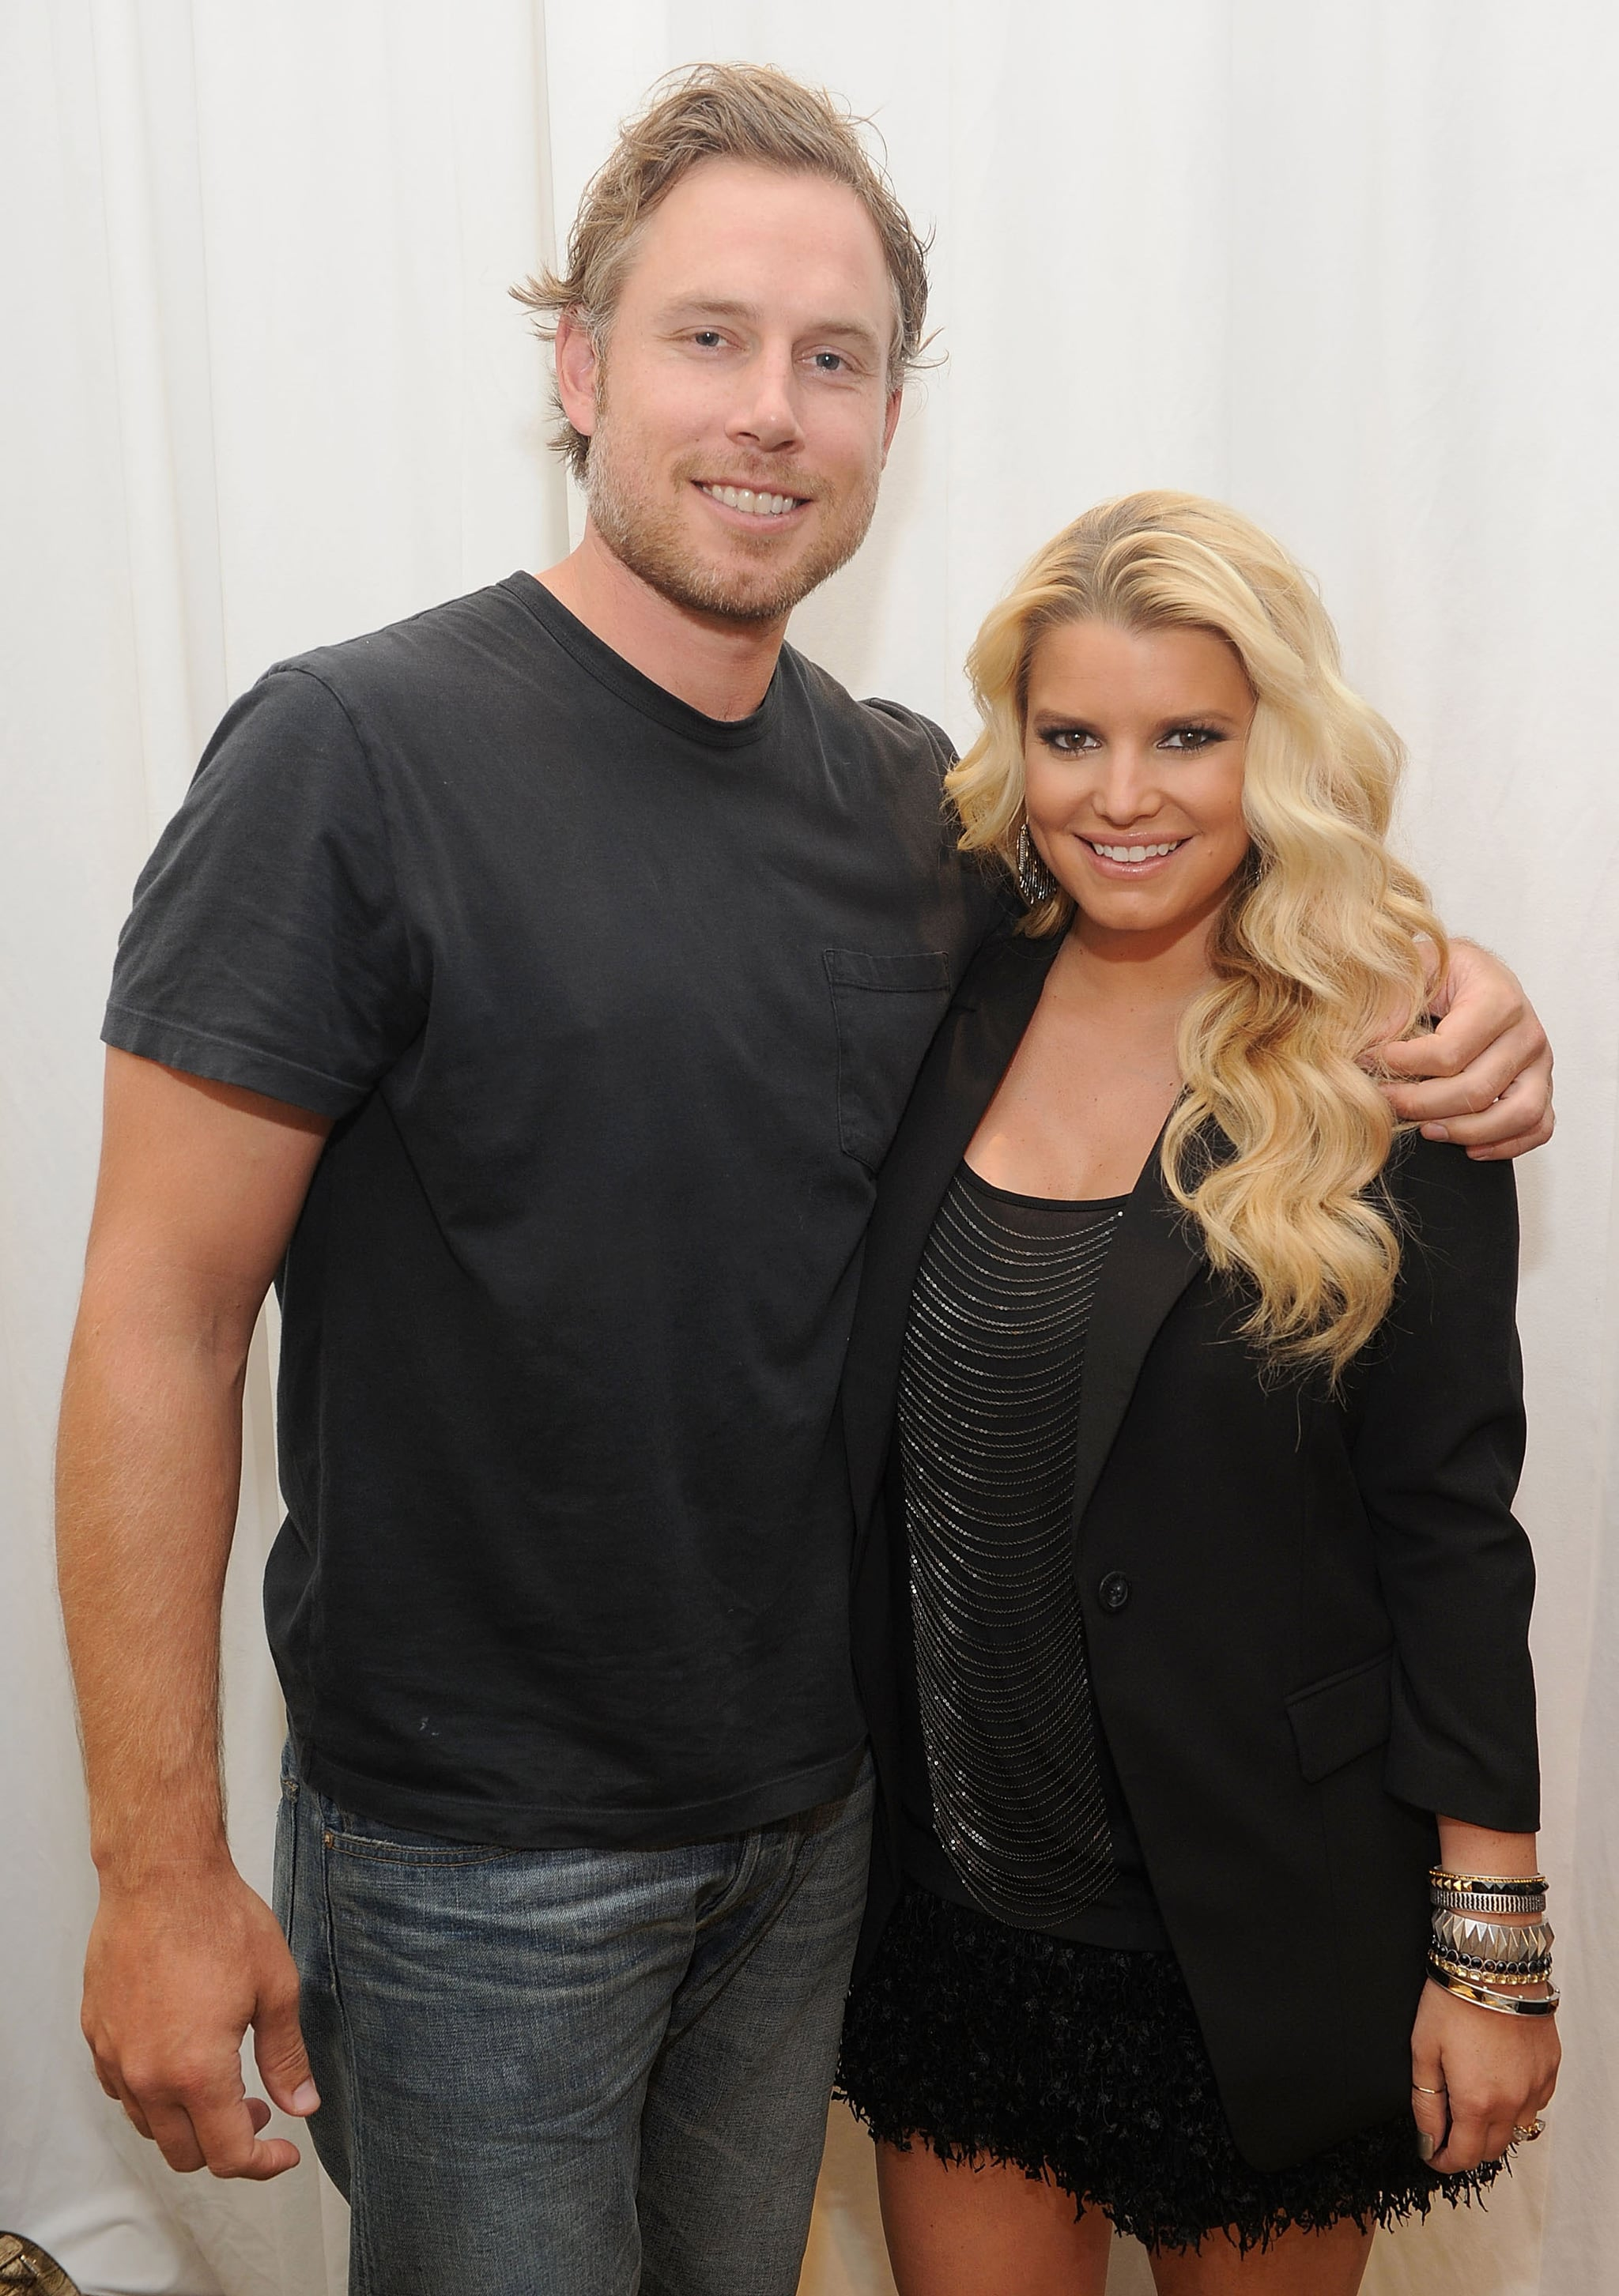 The couple posed during Jessica's in-store appearance at Macy's in San Francisco in October 2011.